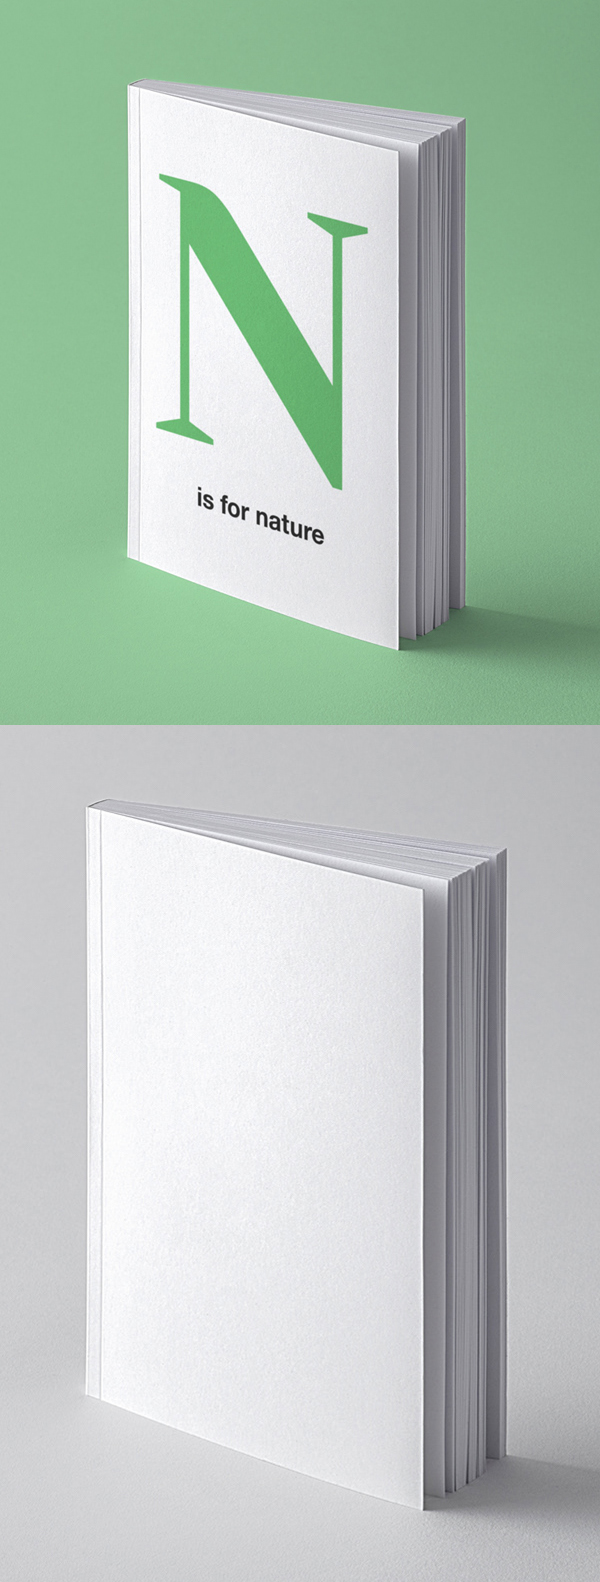 Free Book Perspective Mockup Template